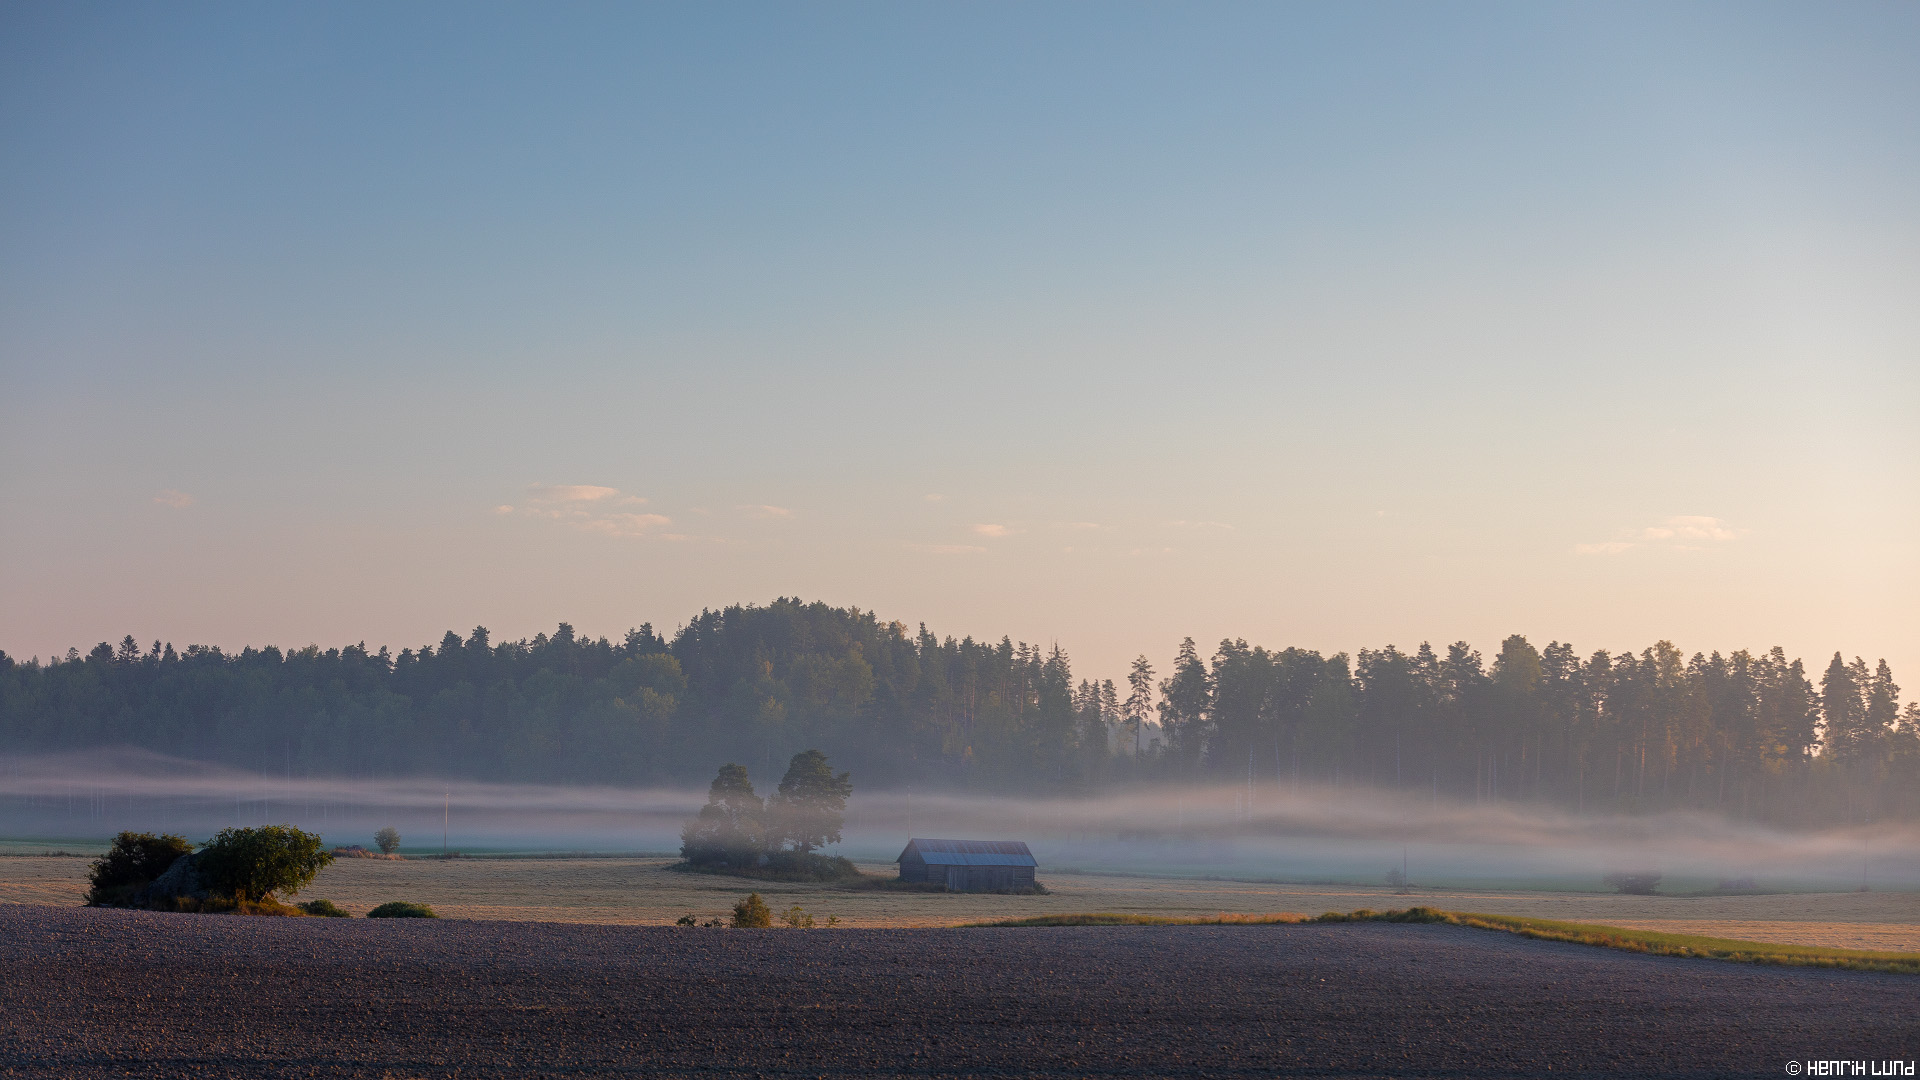 Morning landscape. Porlom, Lappträsk, Finland. August 2015.